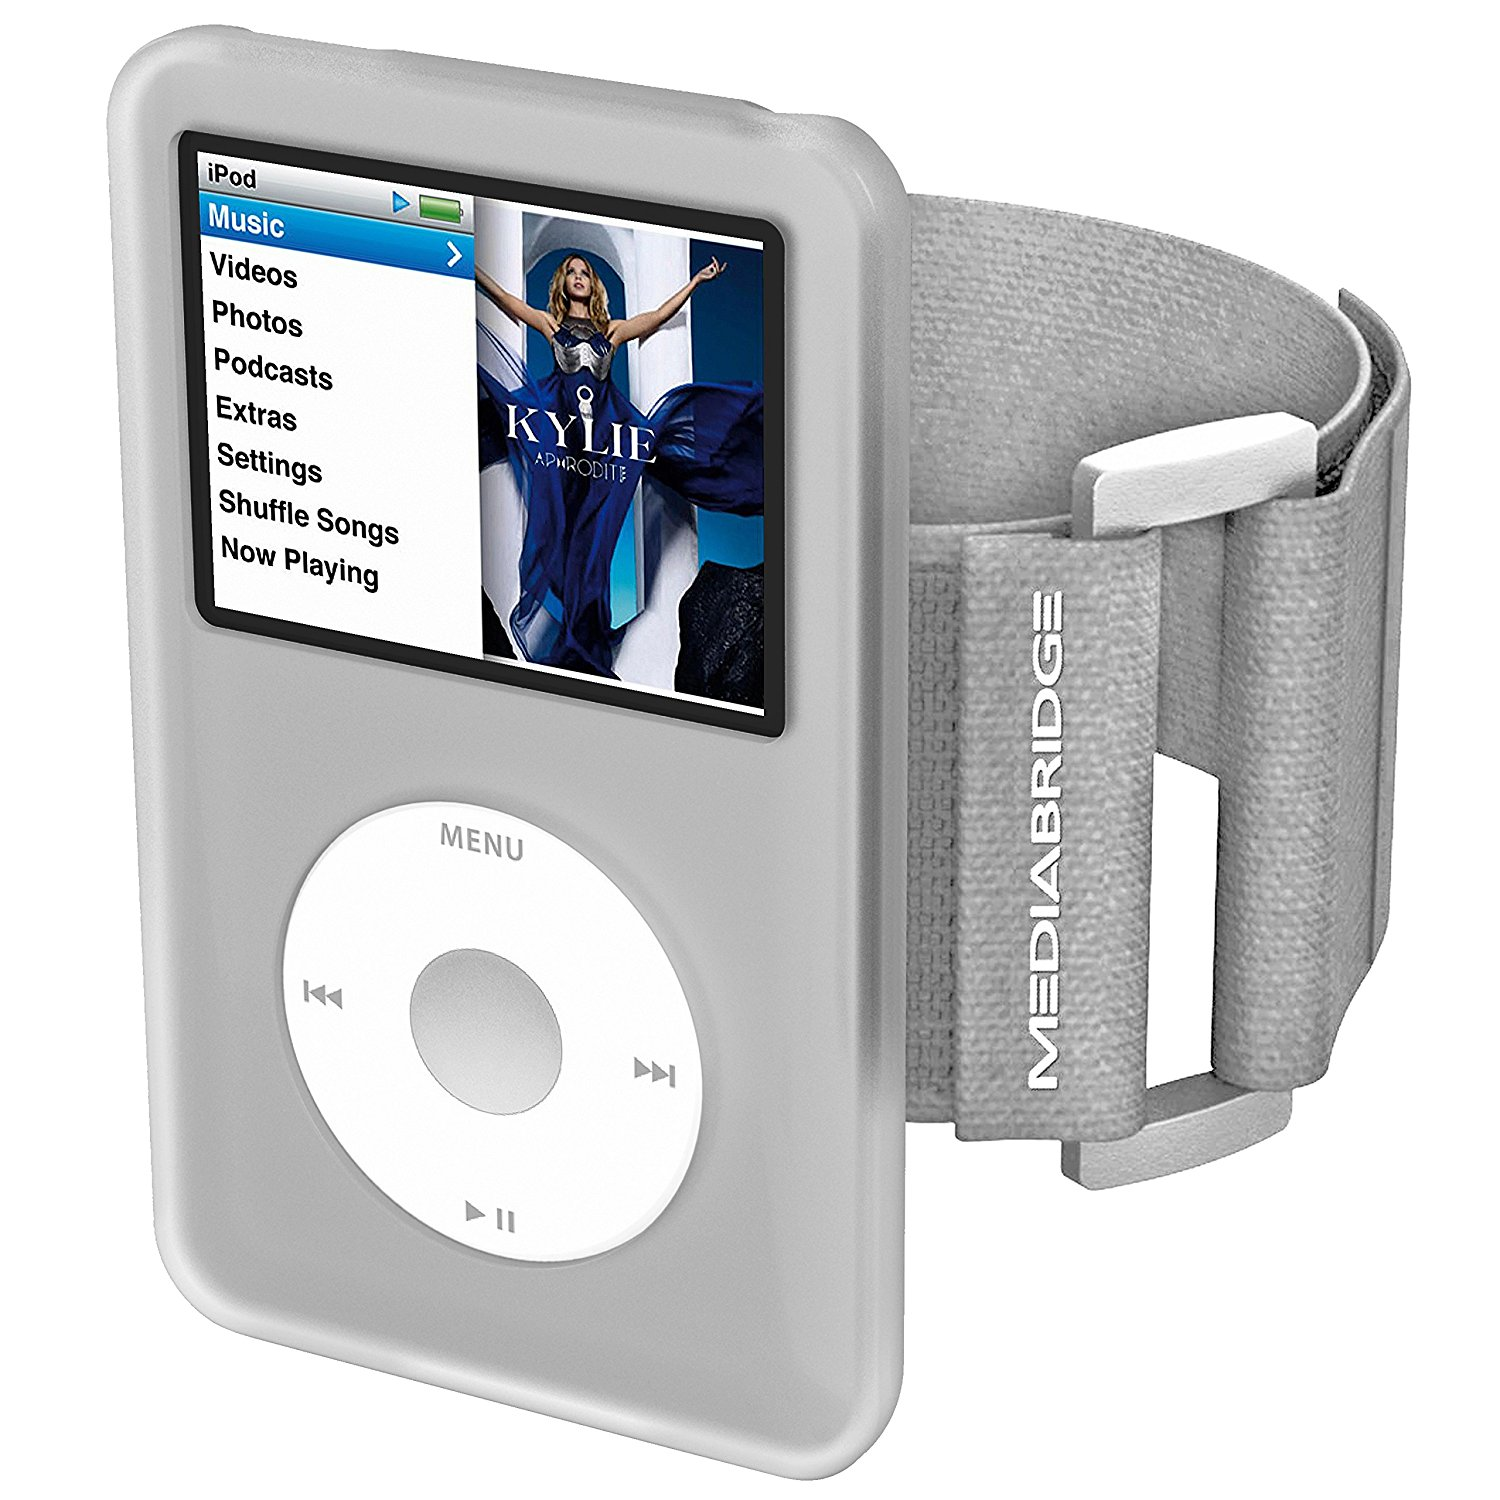 mediabridge armband for ipod classic 7th generation clear model ab1 ...